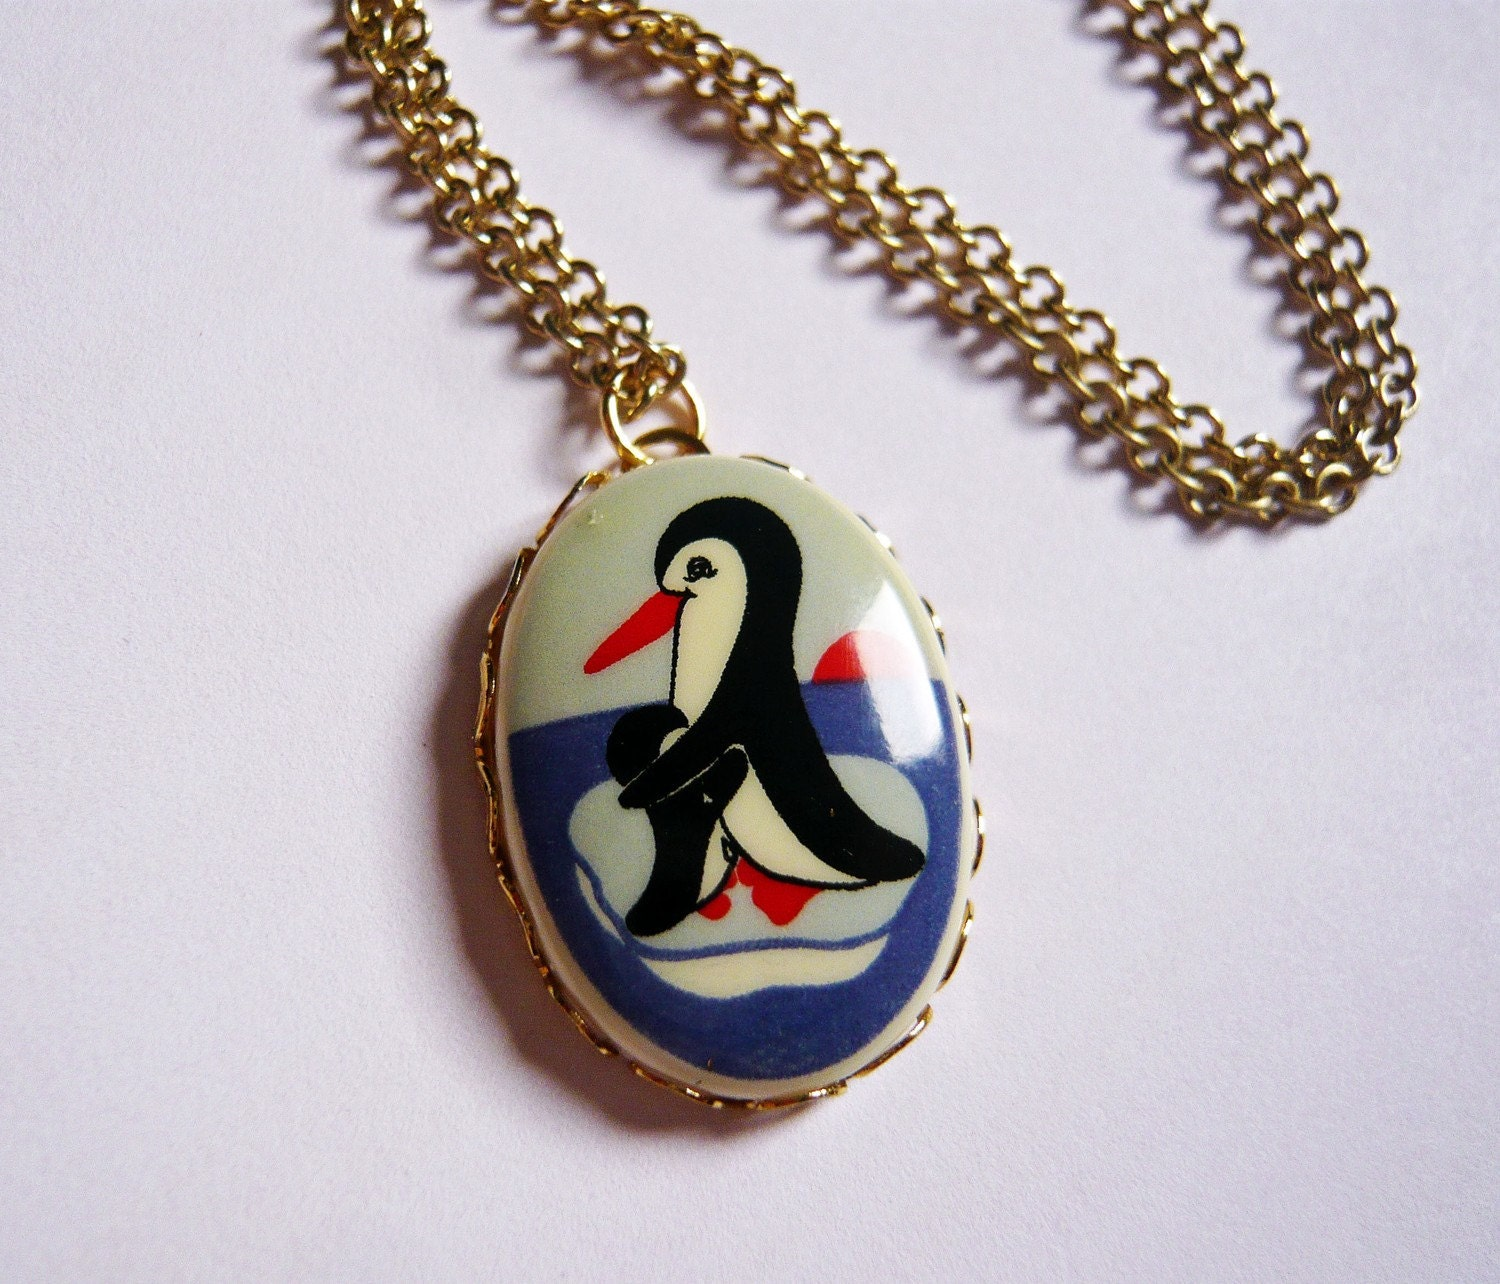 Vintage Mom and Baby Penguin Cameo Necklace by MaruMaru on Etsy from etsy.com